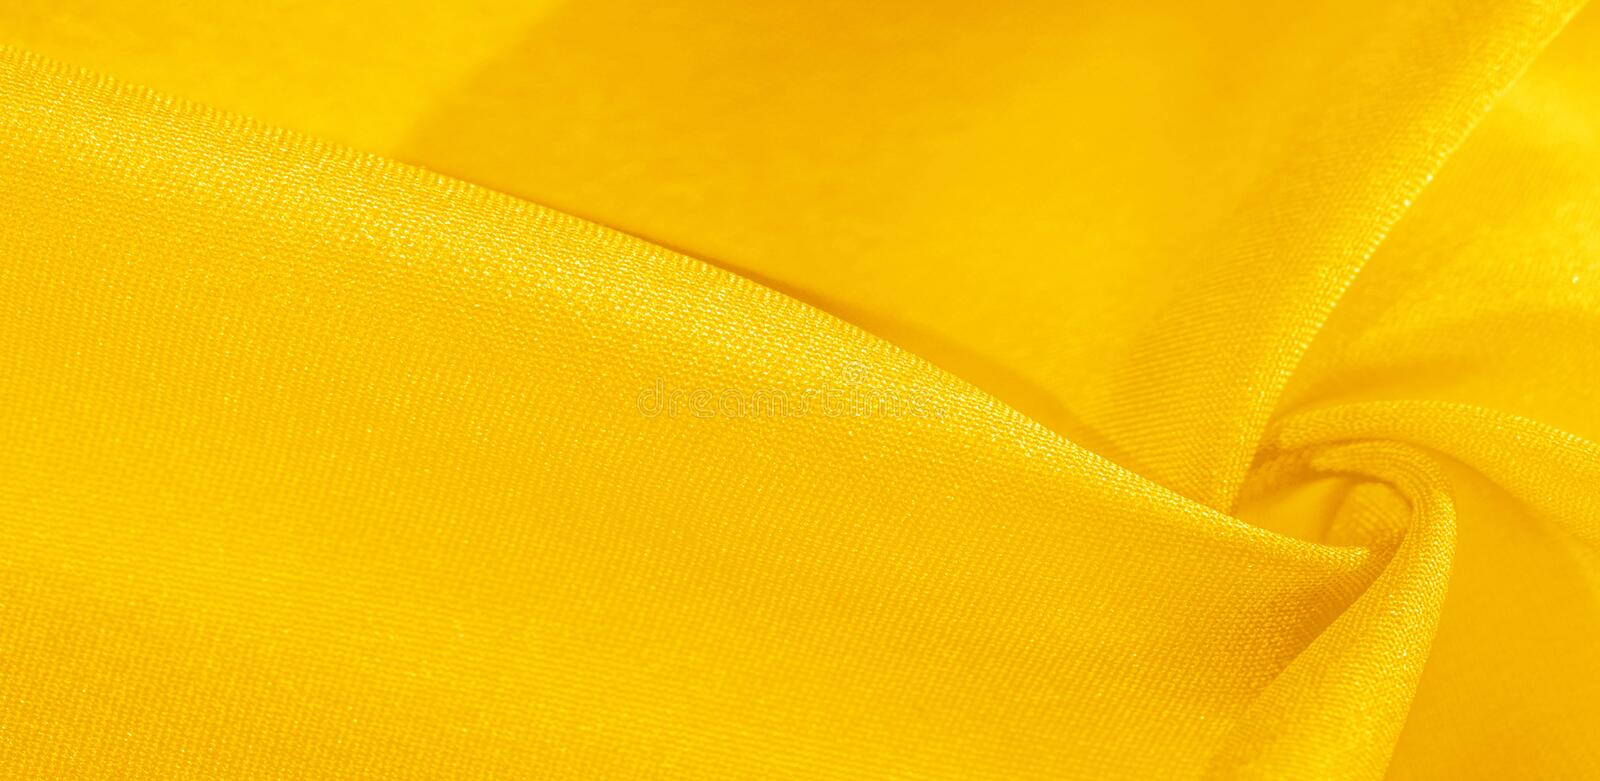 Texture, background, pattern, silk fabric in yellow. This silk is incredibly exquisite. Projects made from this will last a long. Time and will still be in royalty free illustration